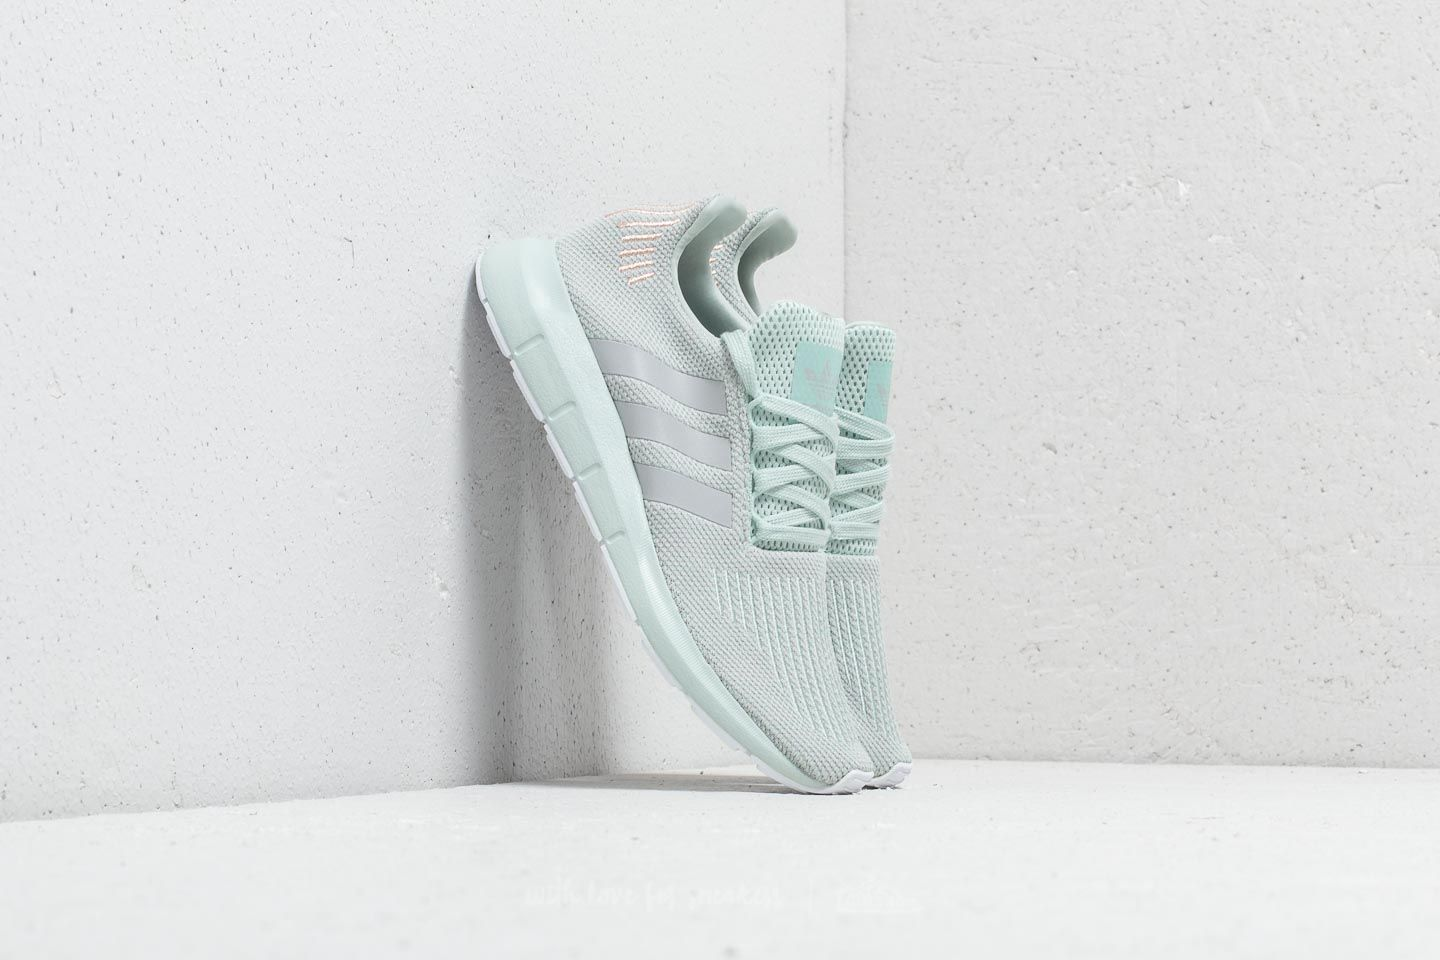 570a2ea1cce7 adidas Swift Run W Vapour Green  Grey Two  Ftw White